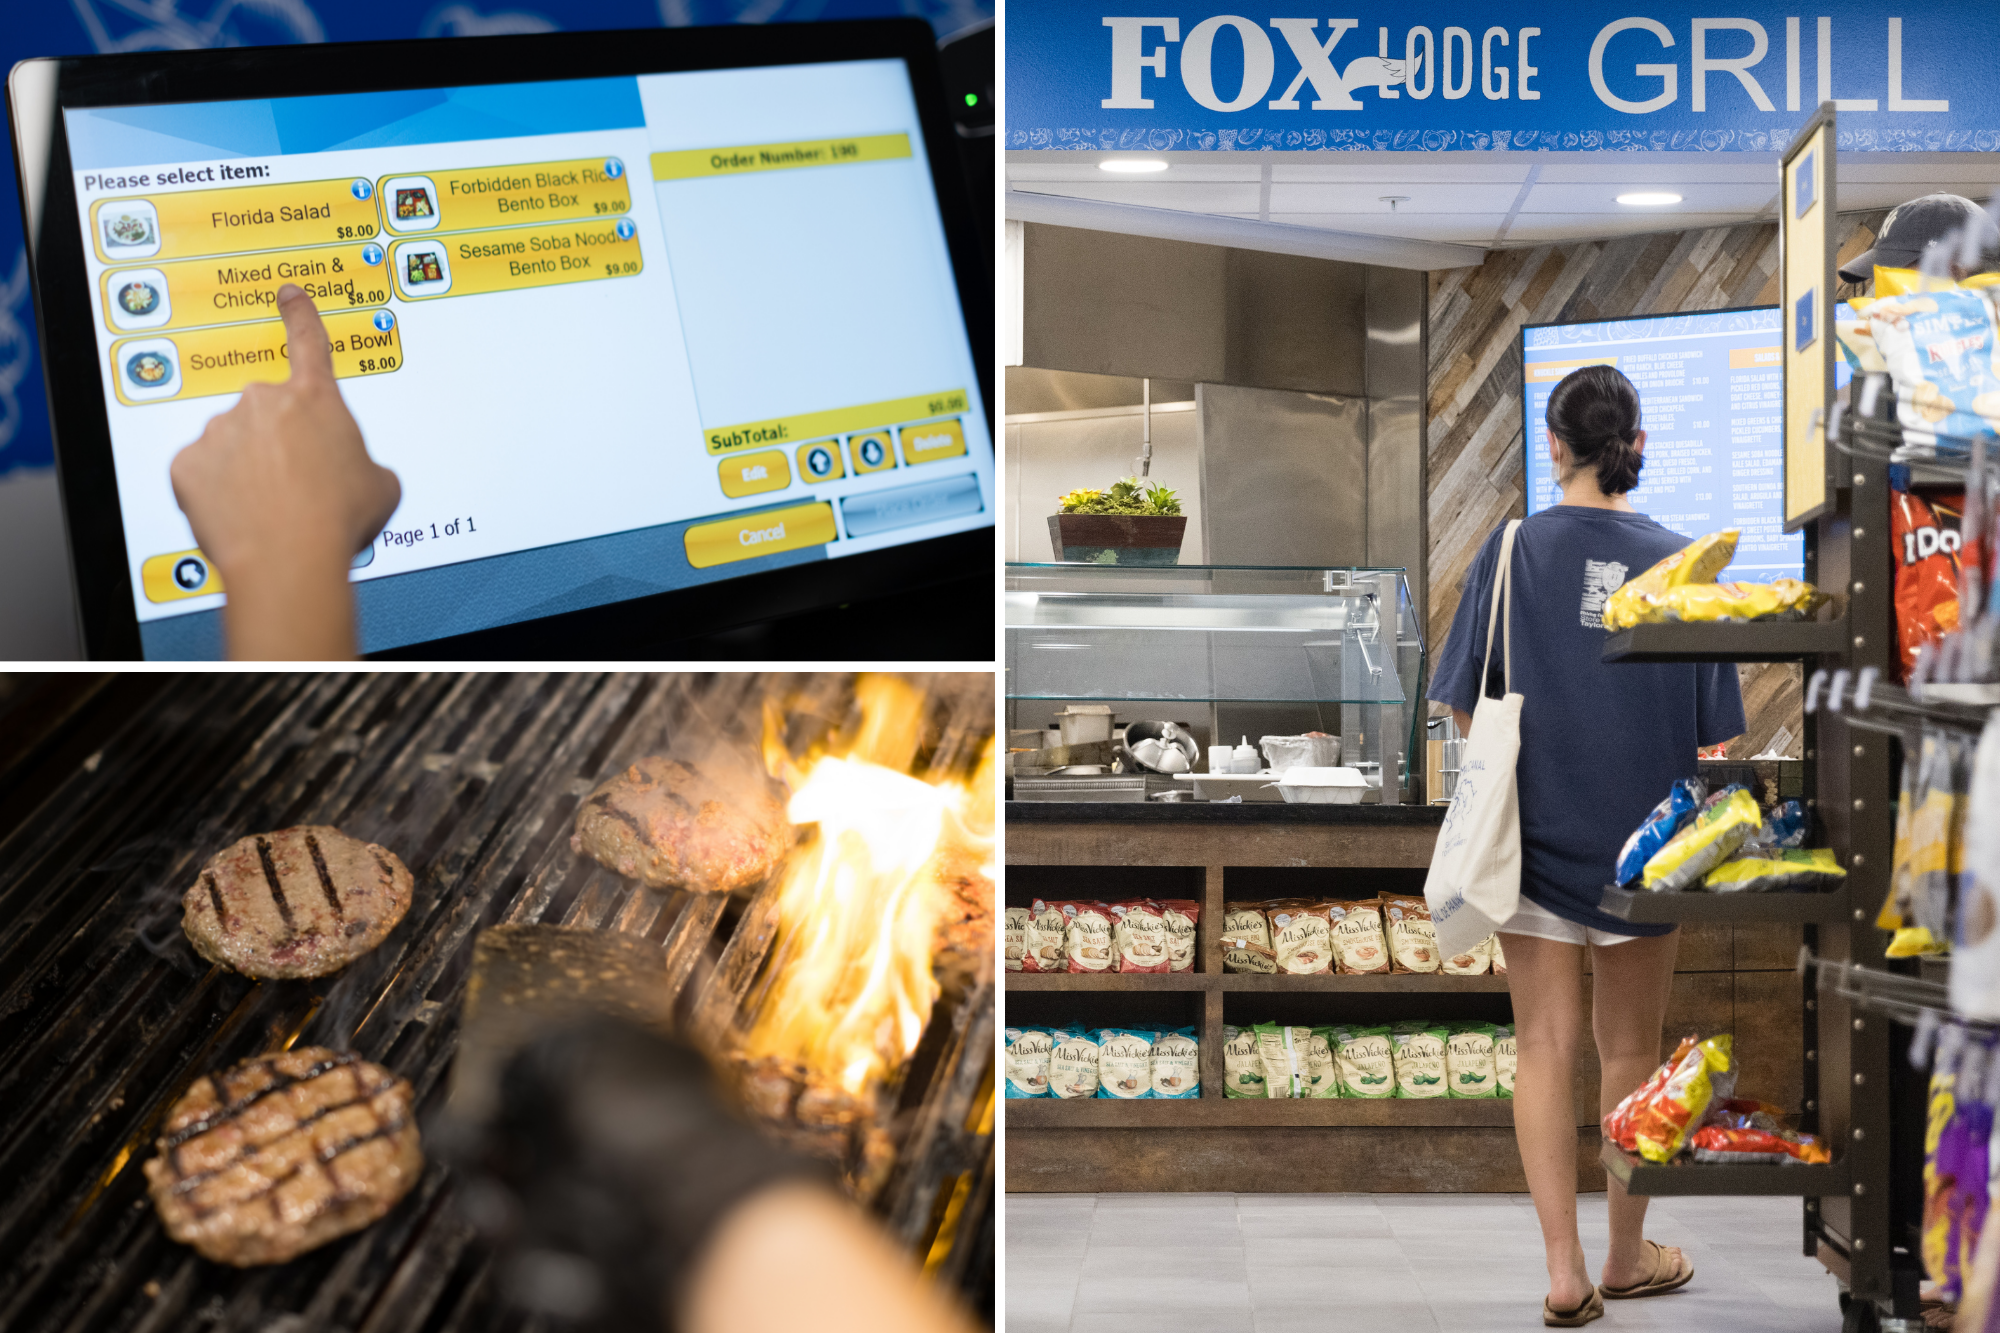 Mobile ordering at the Grill